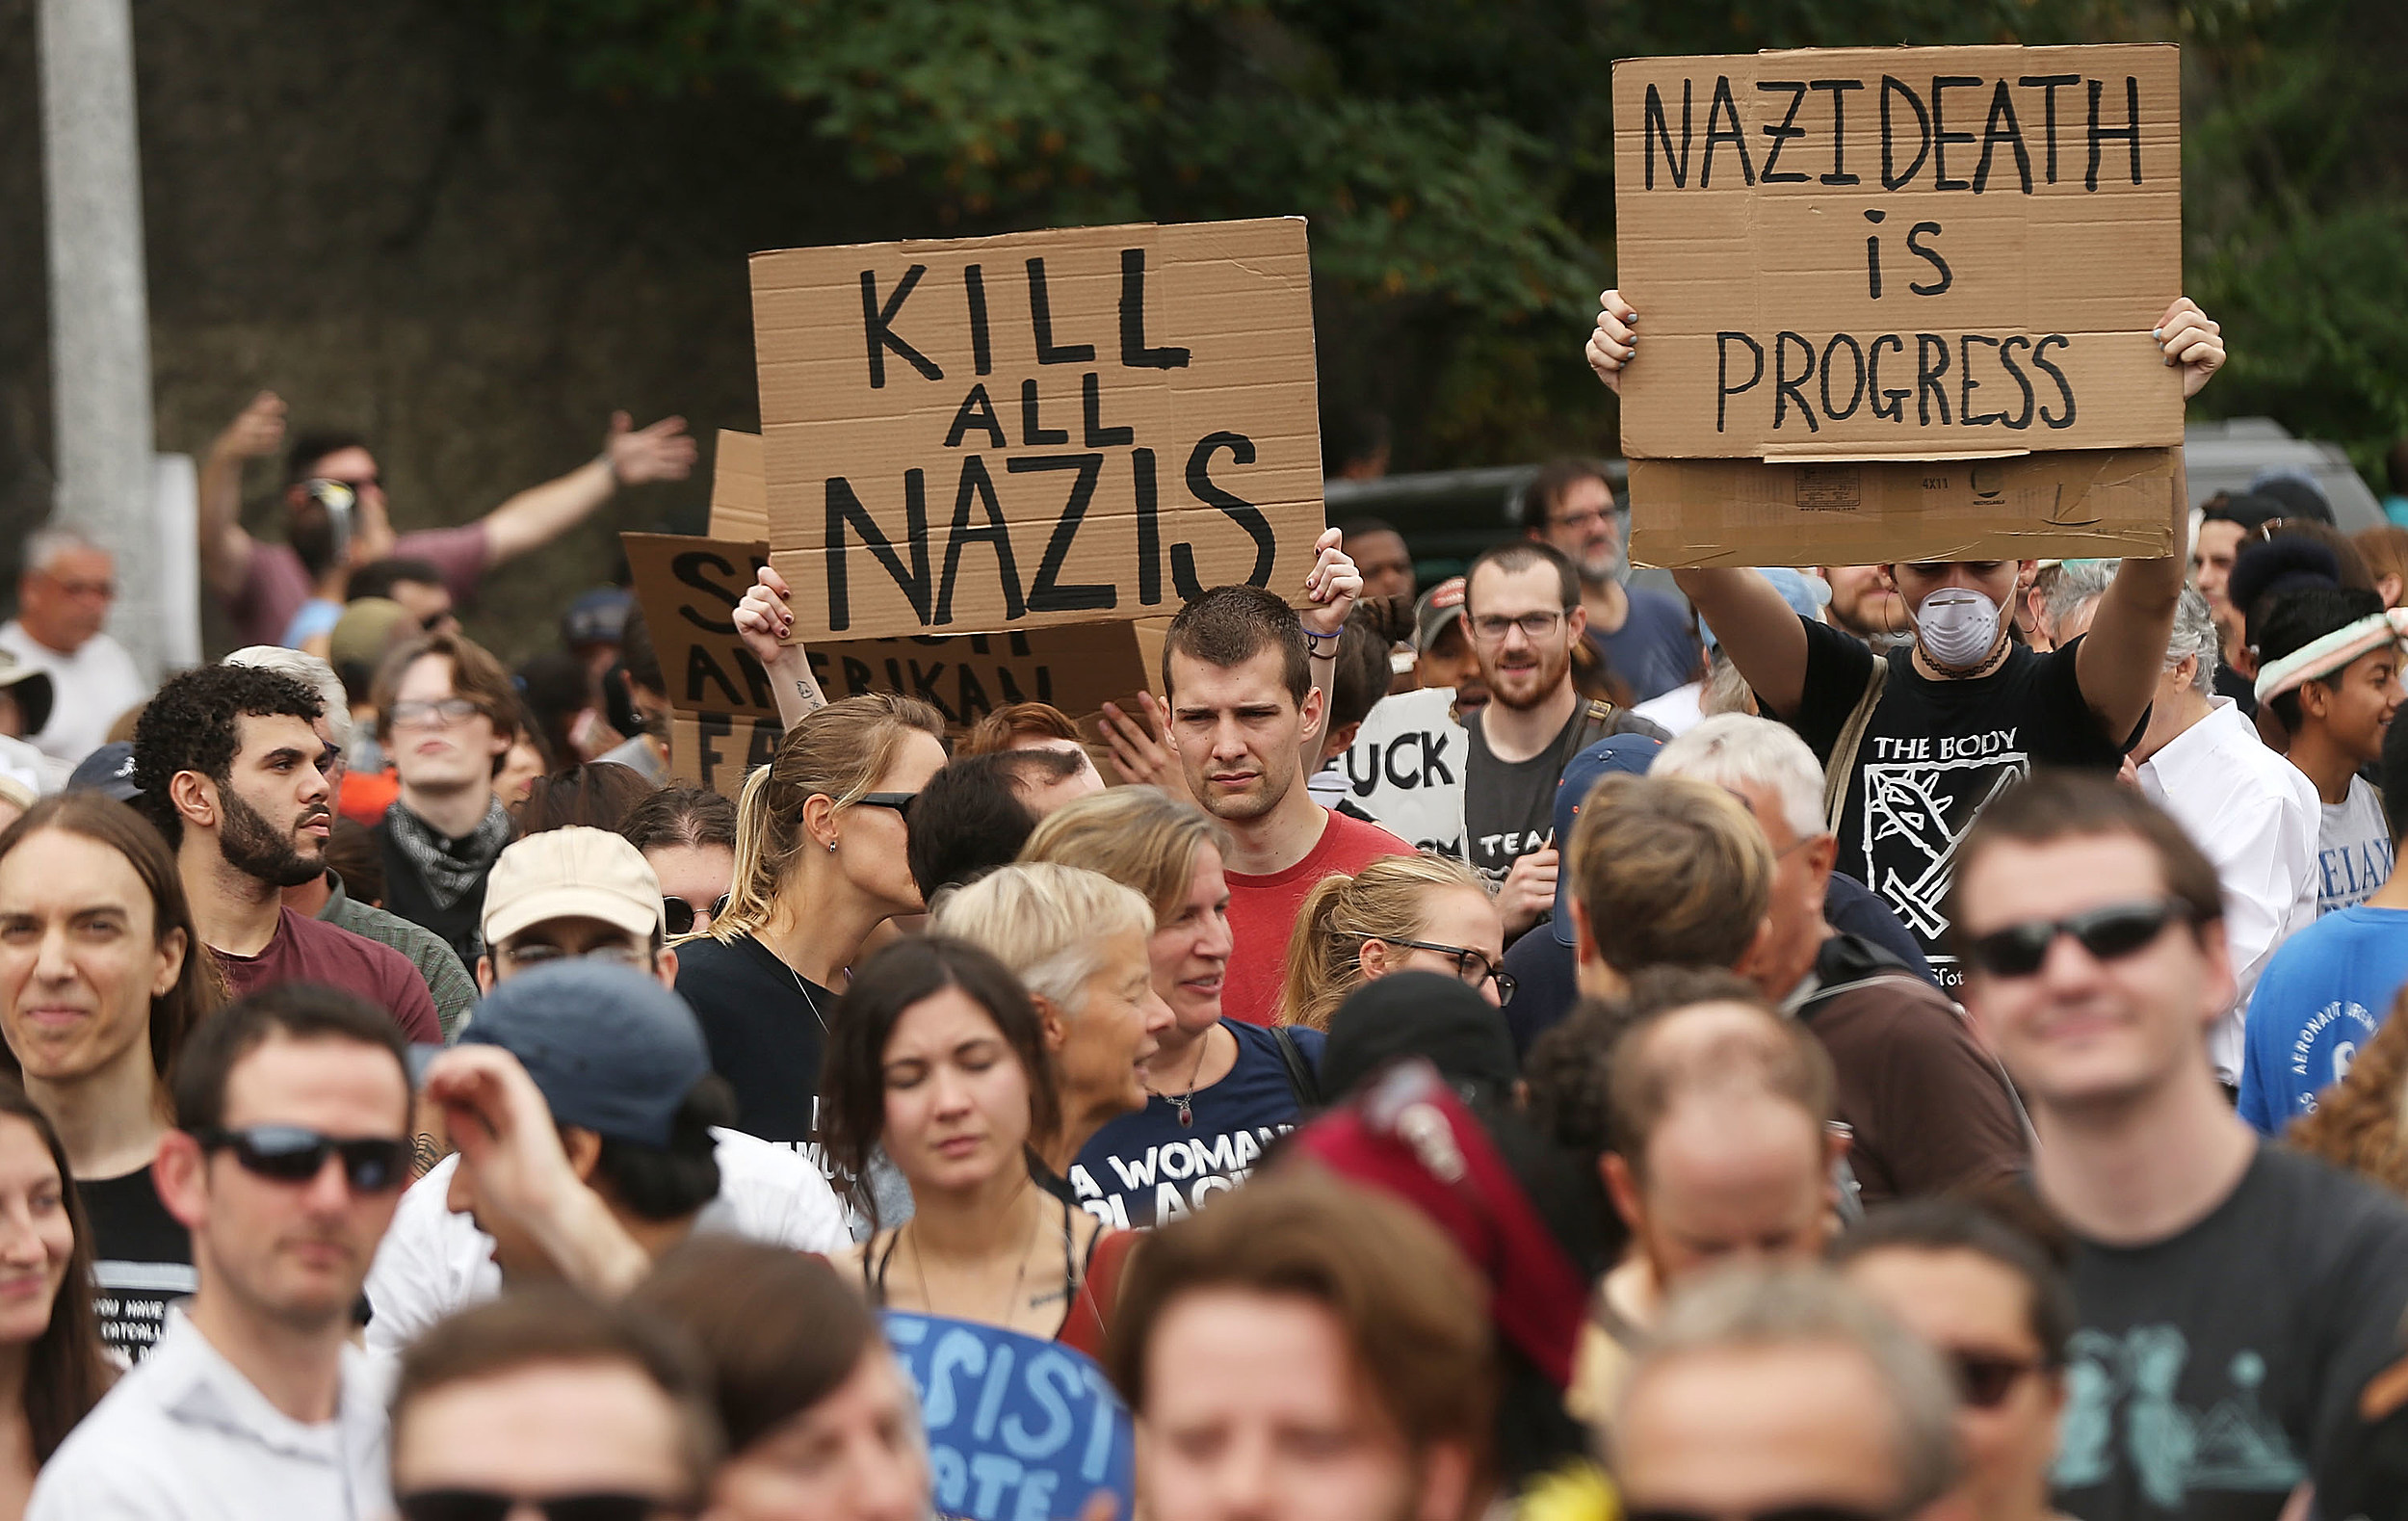 Solidarity With Charlottesville Rallies Are Held Across The Country, In Wake Of Death After Alt Right Rally Last Week